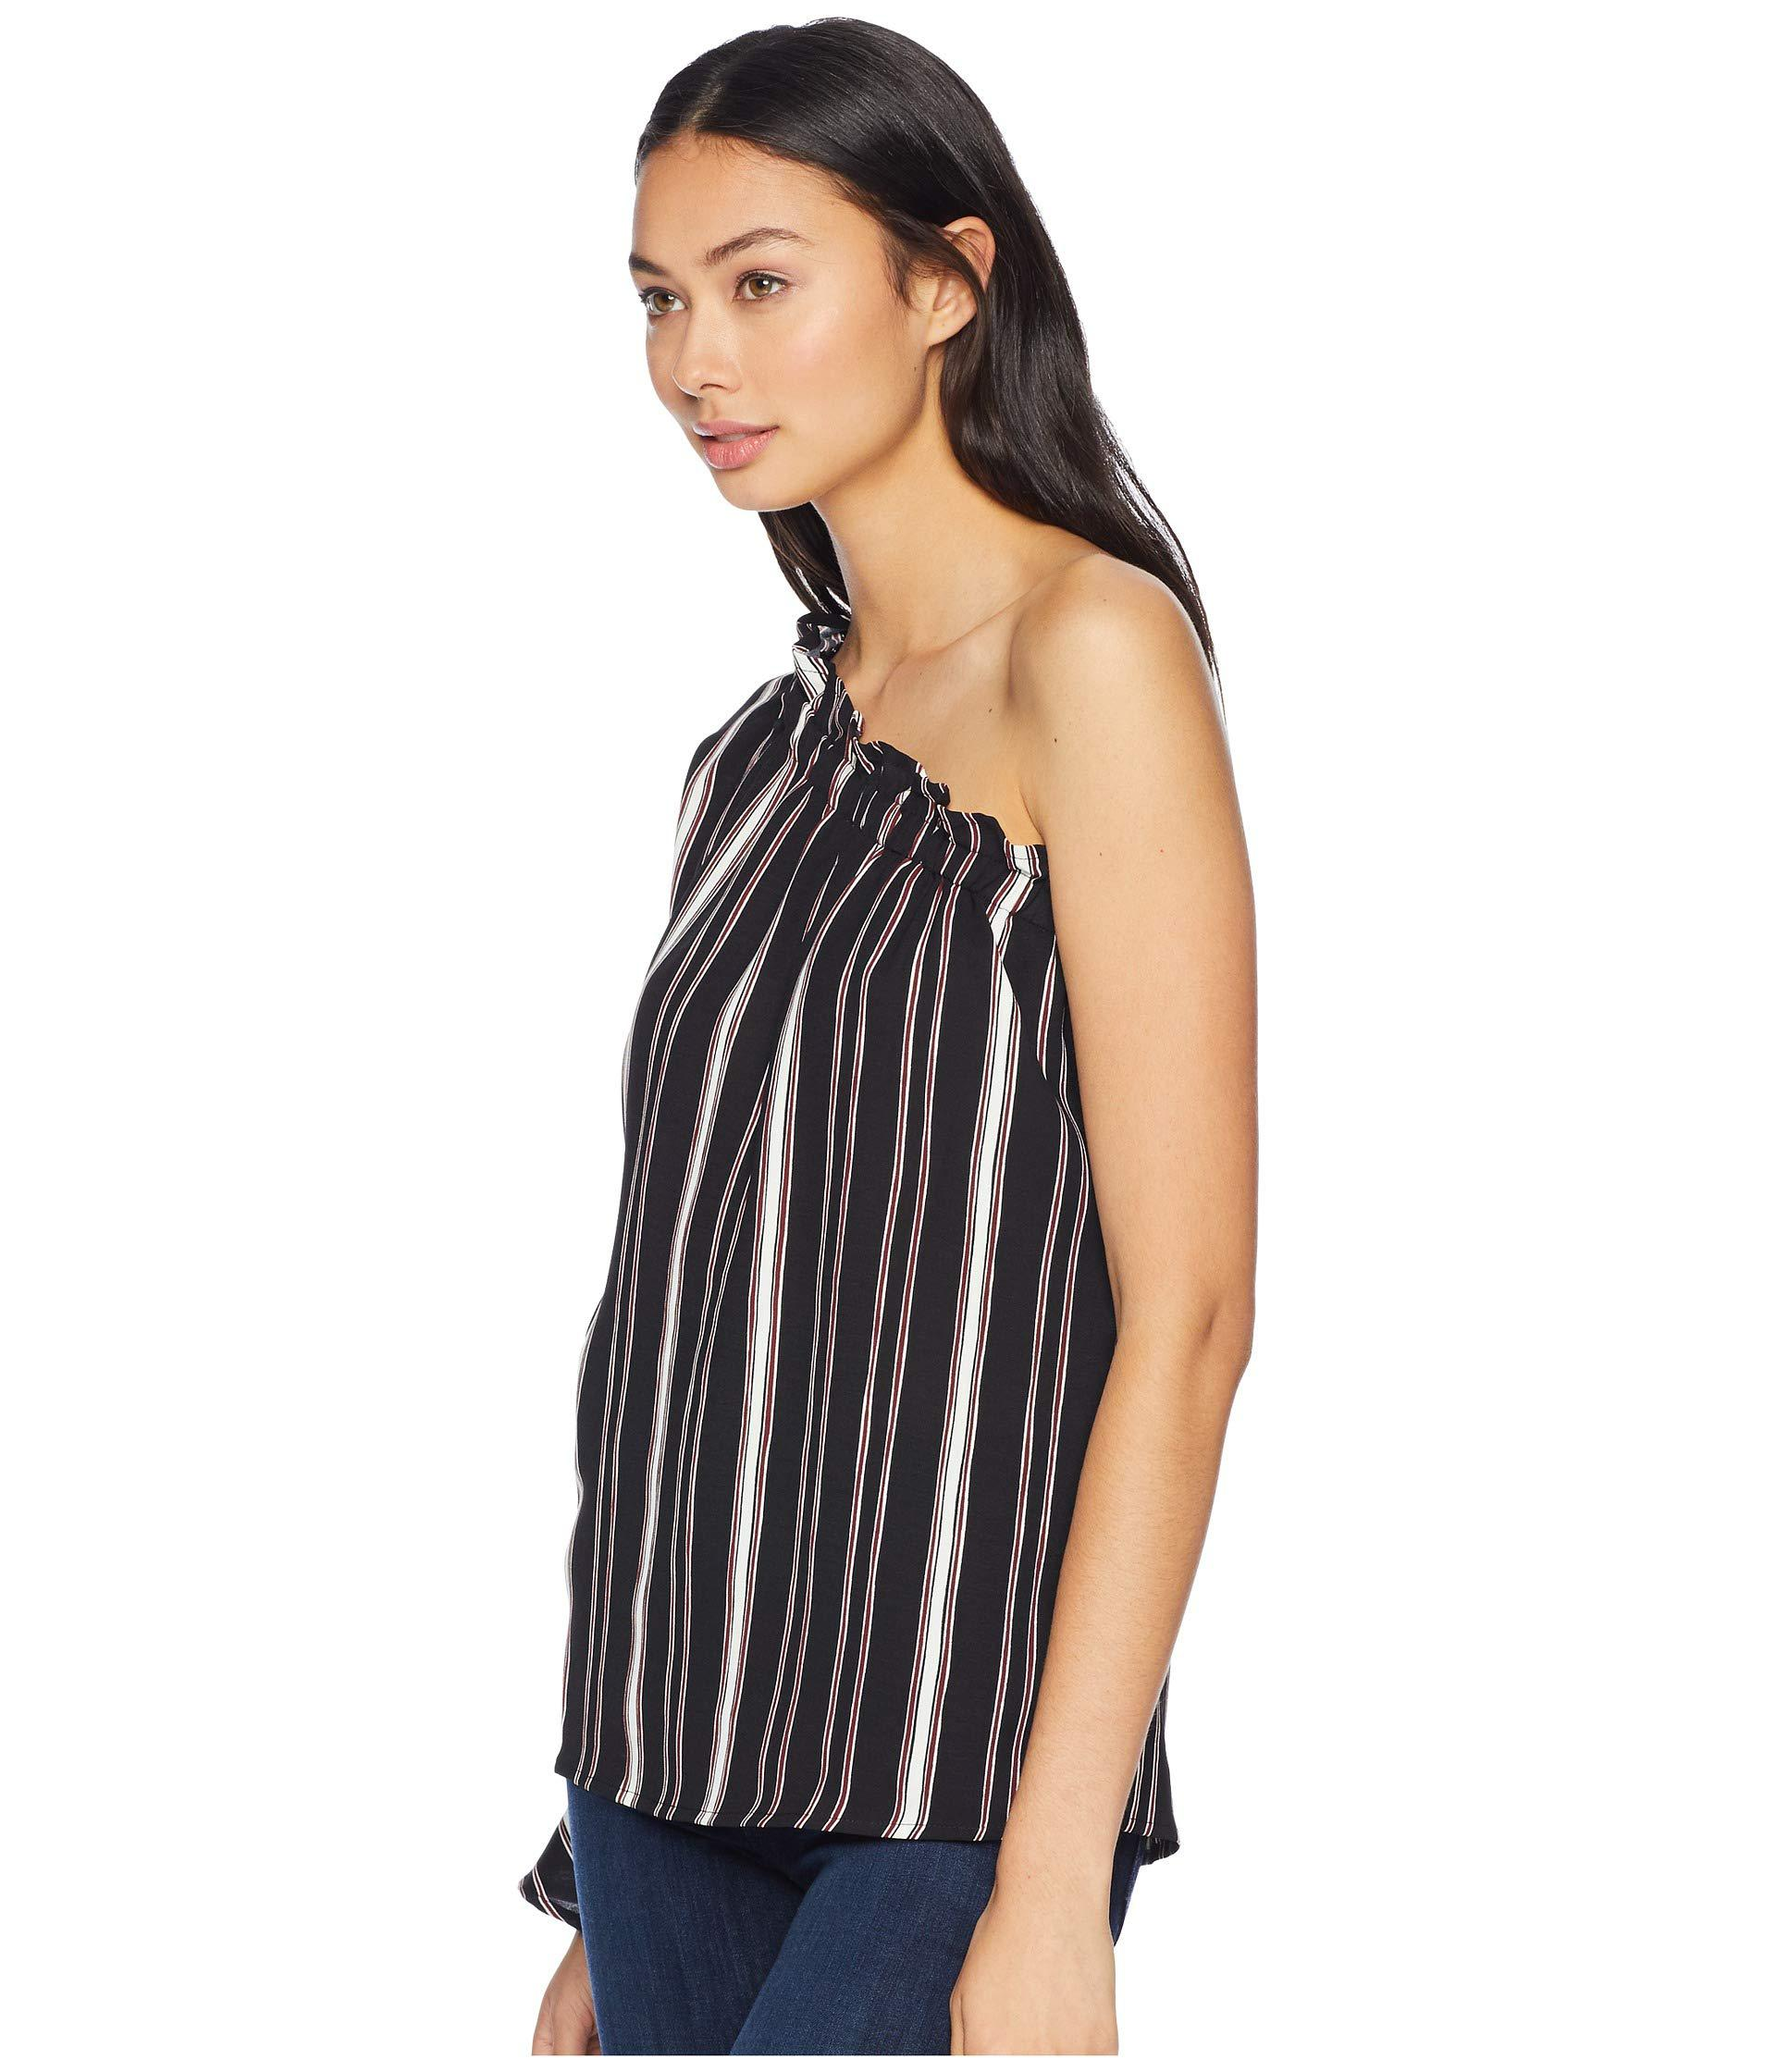 cfea9da00de Lyst - Bishop + Young Stripe One Shoulder Top (navy) Women's Clothing in  Blue - Save 17%